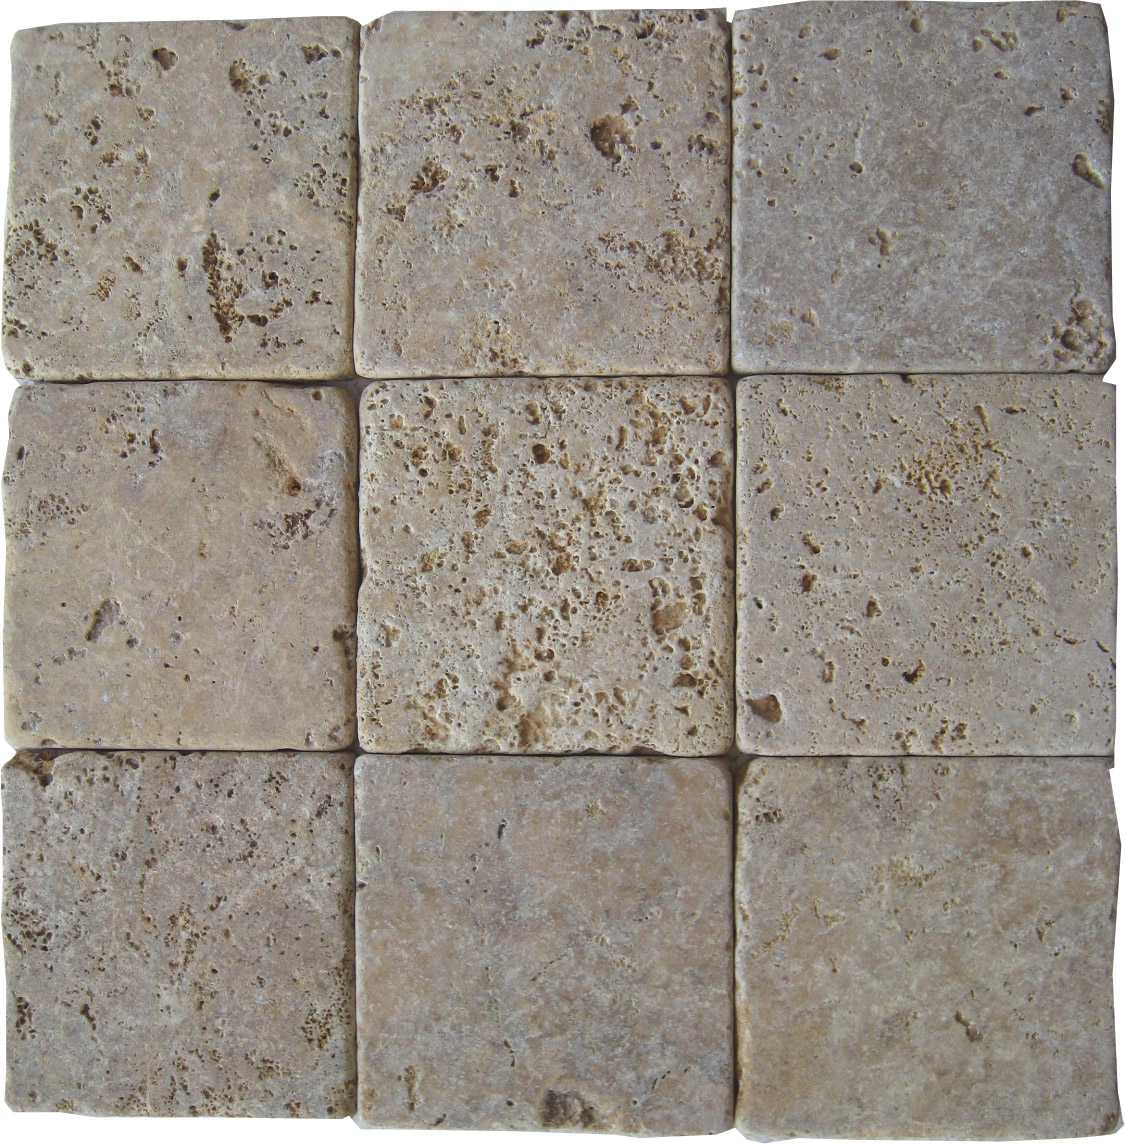 Golden Sienna Travertine Tumbled Tiles E4 3000 In South